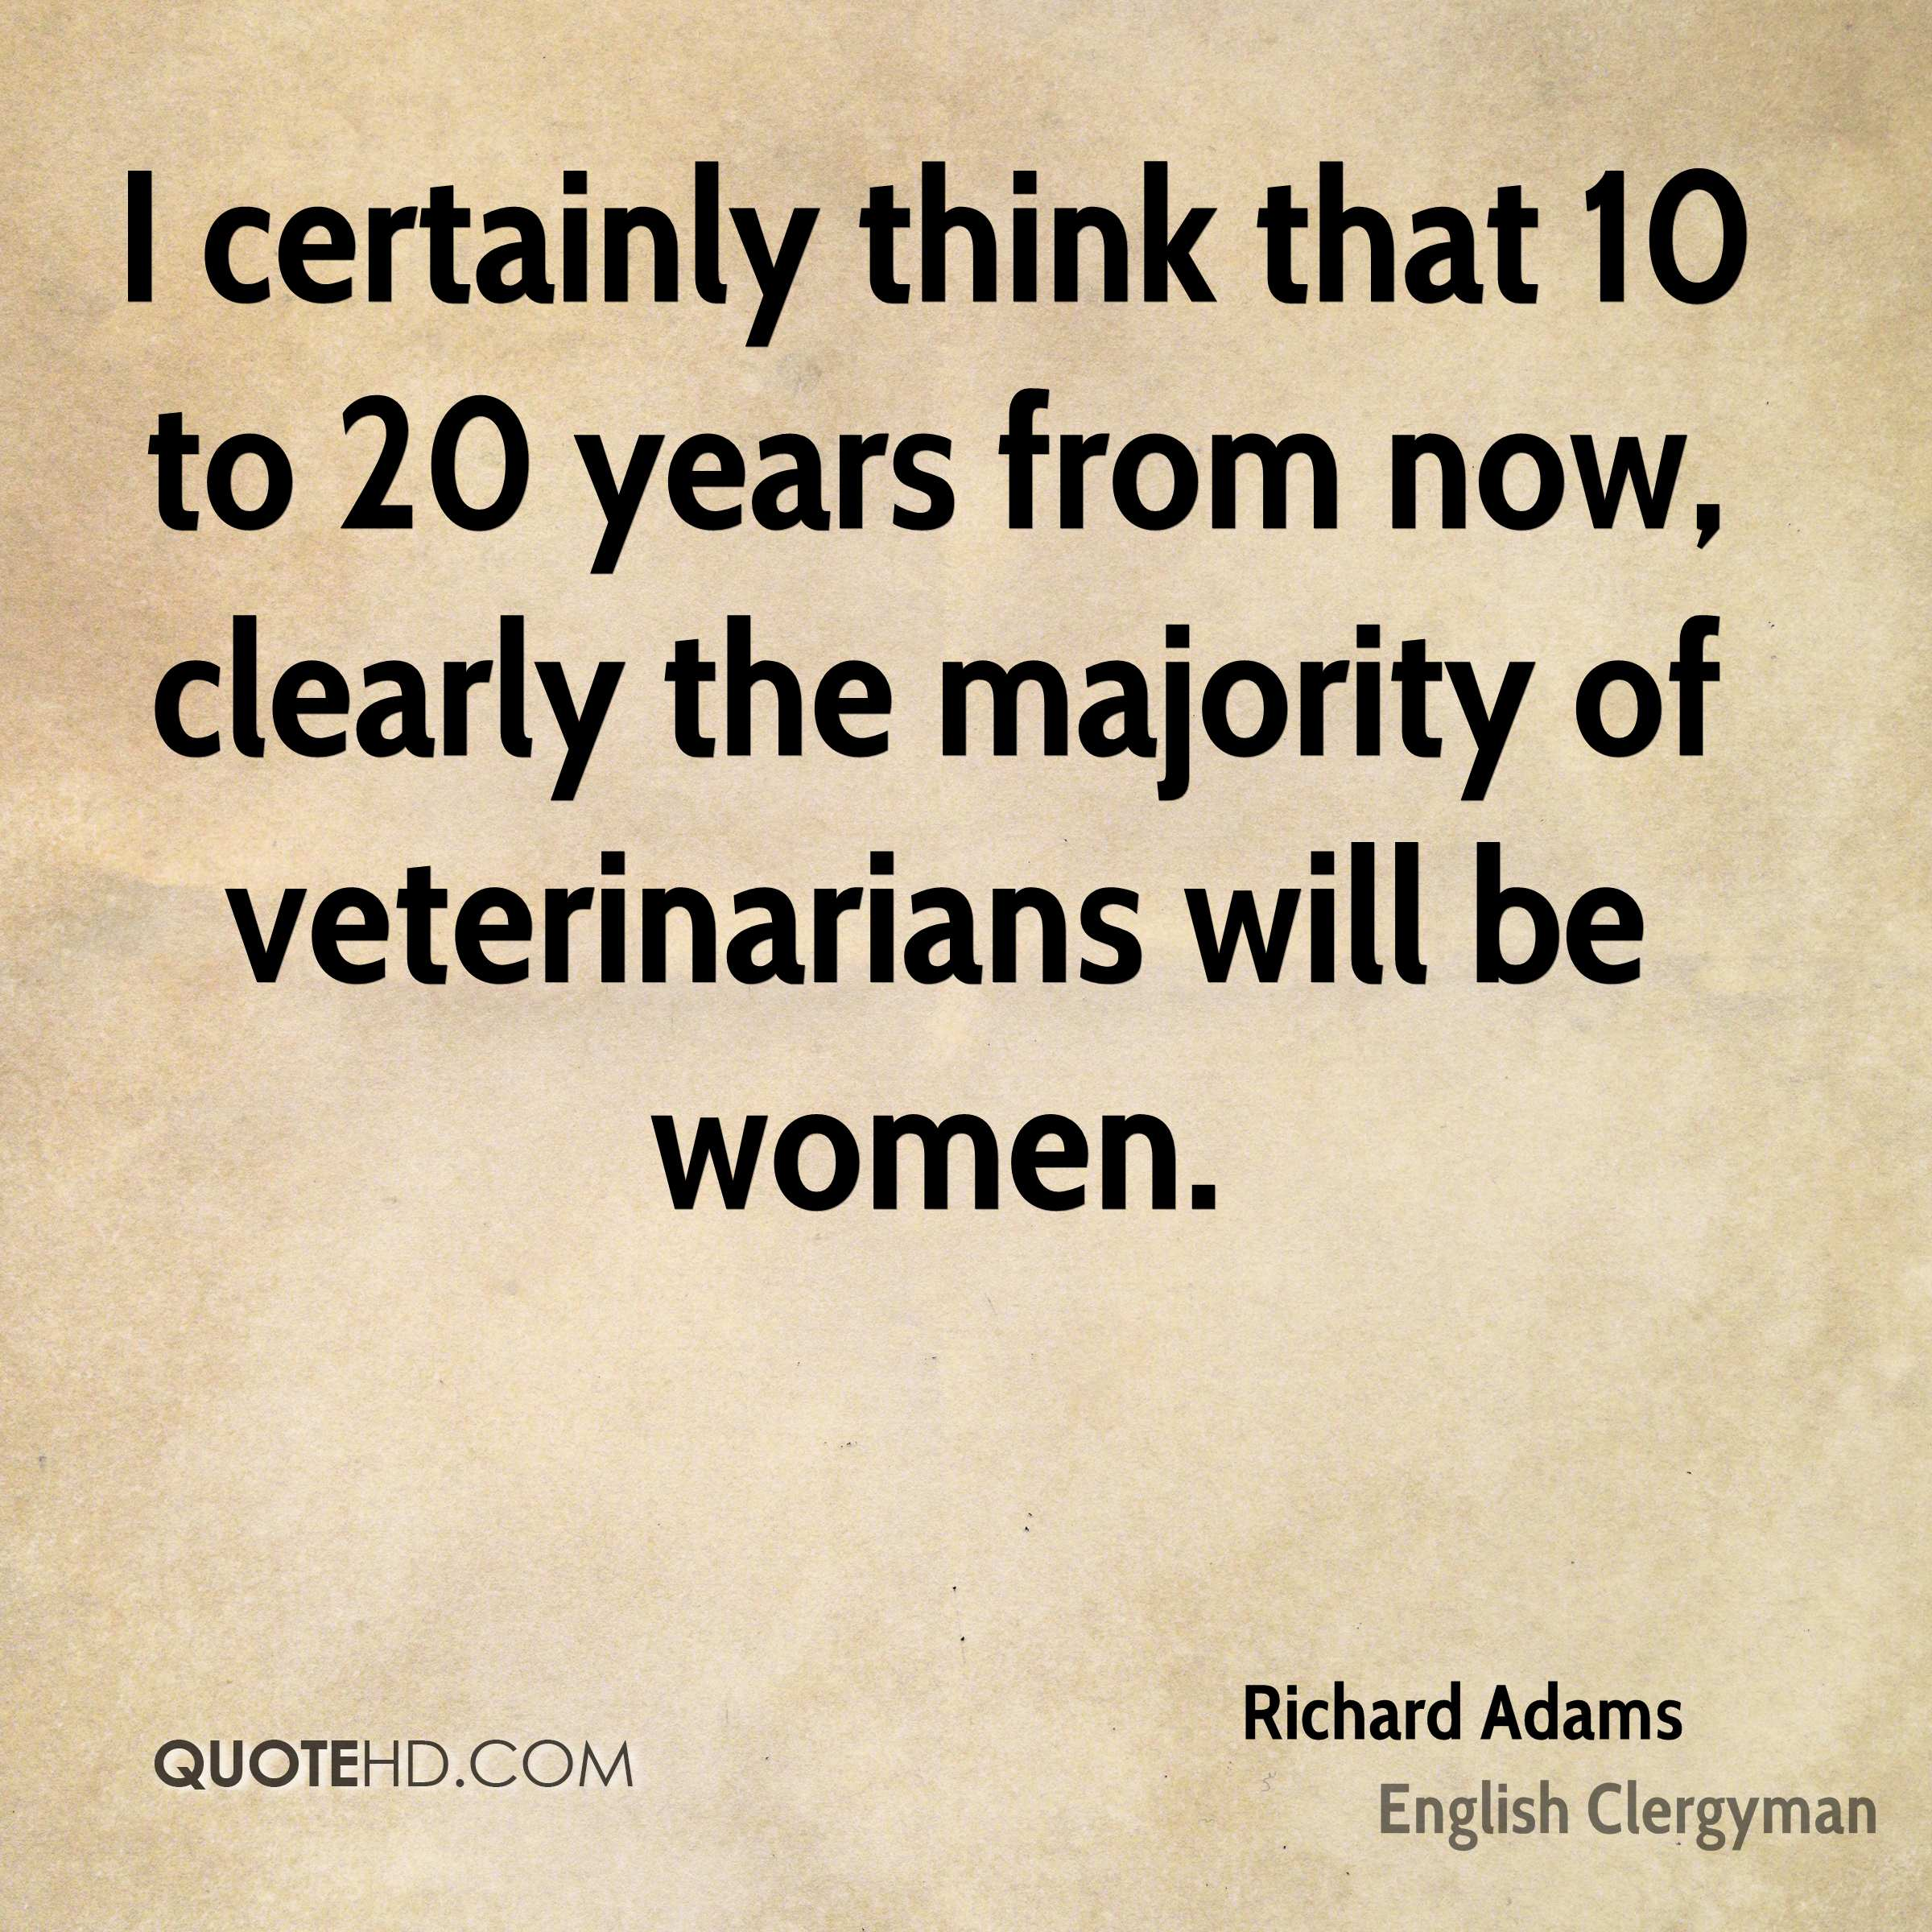 I certainly think that 10 to 20 years from now, clearly the majority of veterinarians will be women.